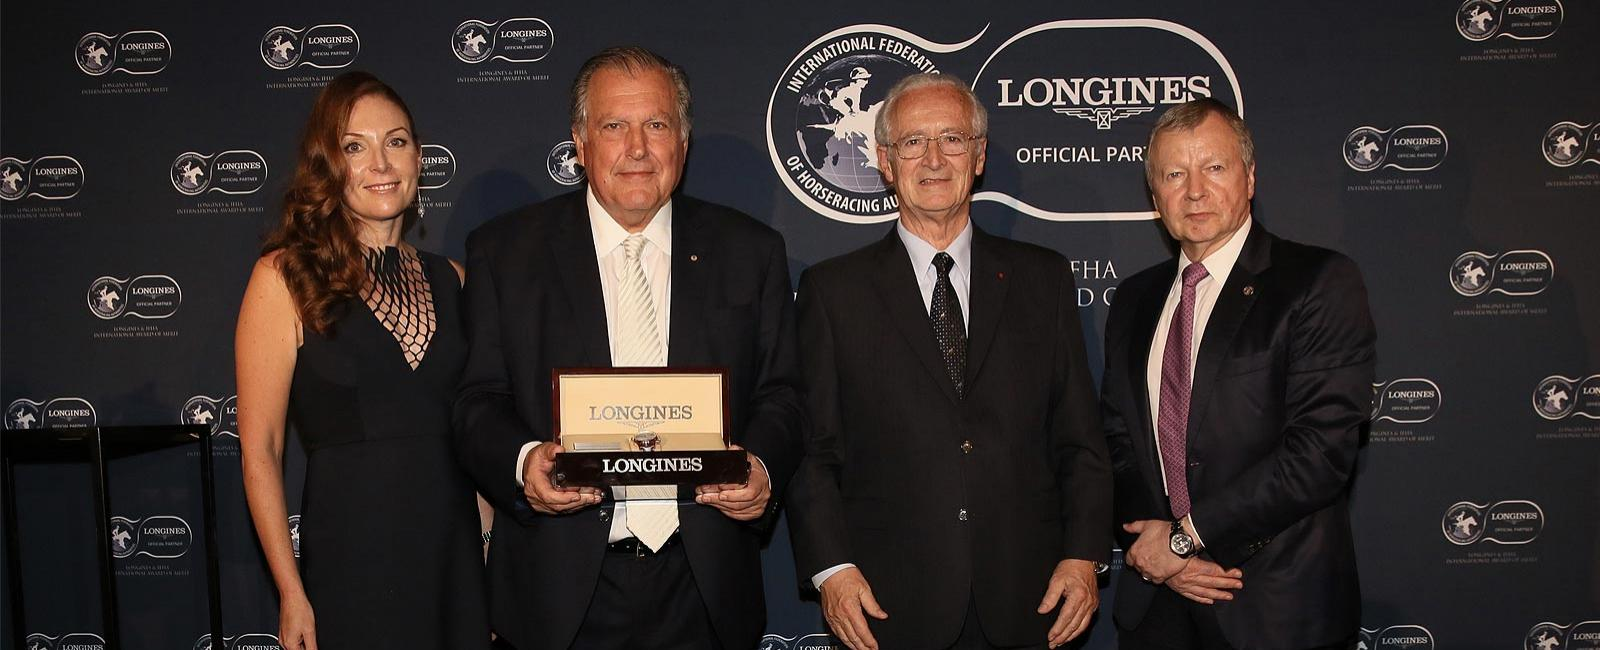 IFHA & Longines Award of Merit; Premio; 2019